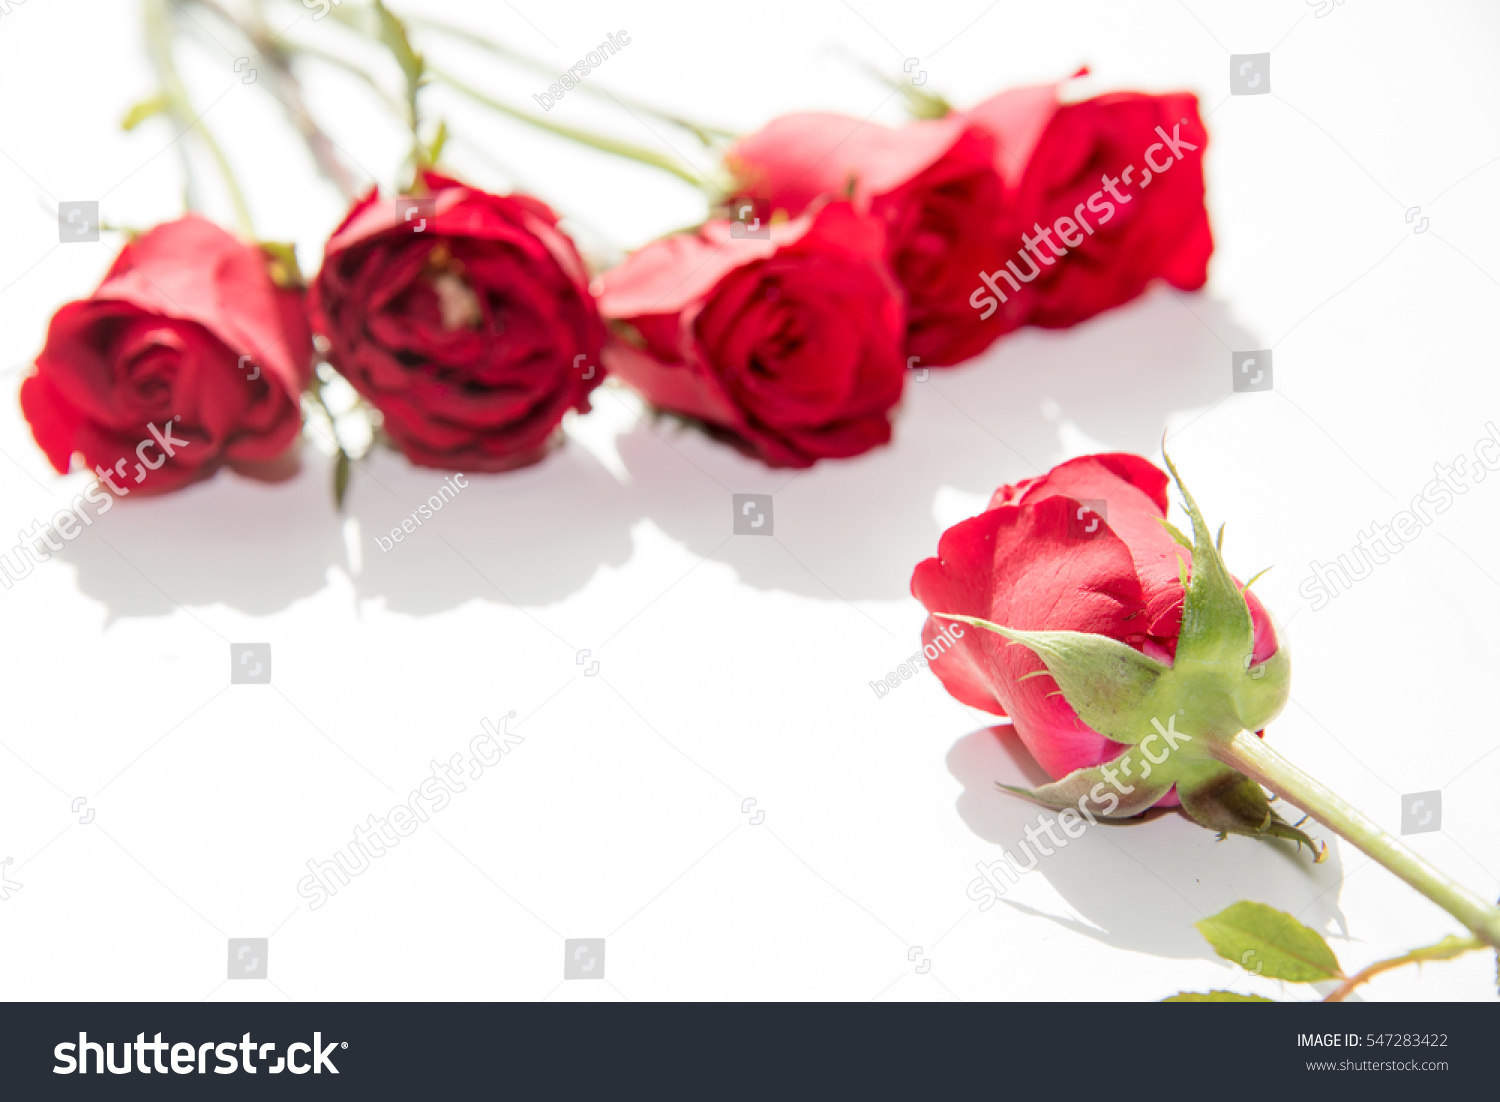 Red Rose Symbol Love Stock Photo Edit Now 547283422 Shutterstock